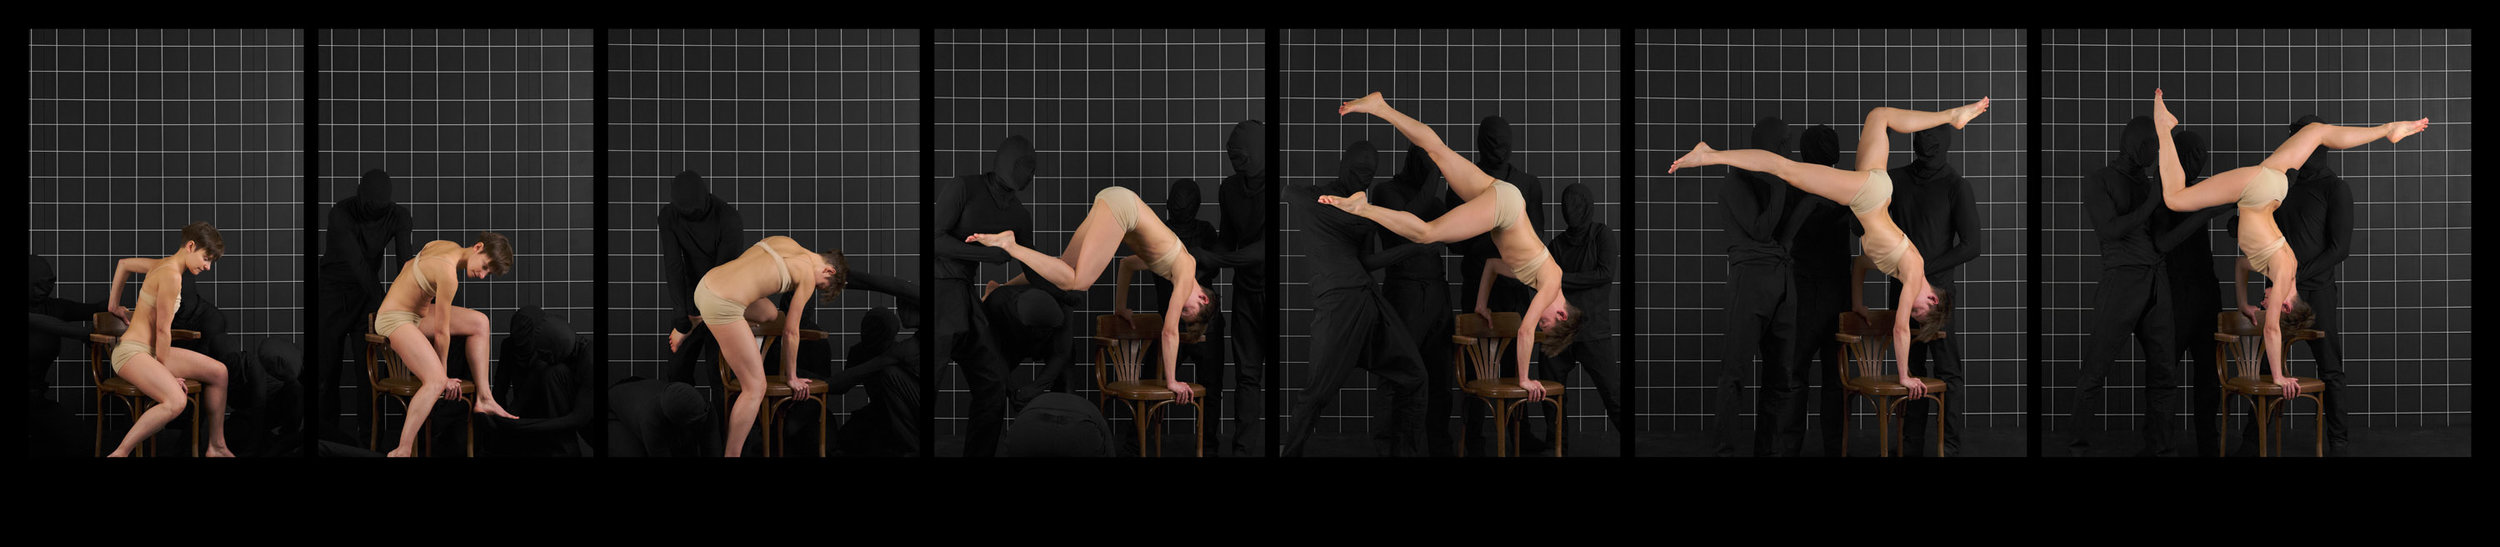 """After Muybridge (Handstand With Chair)  2016, archival pigment print 24 x 110.5 cm (9.5"""" x 43.5"""")  48 x 221 cm (19"""" x 87"""")  Editions of 2"""